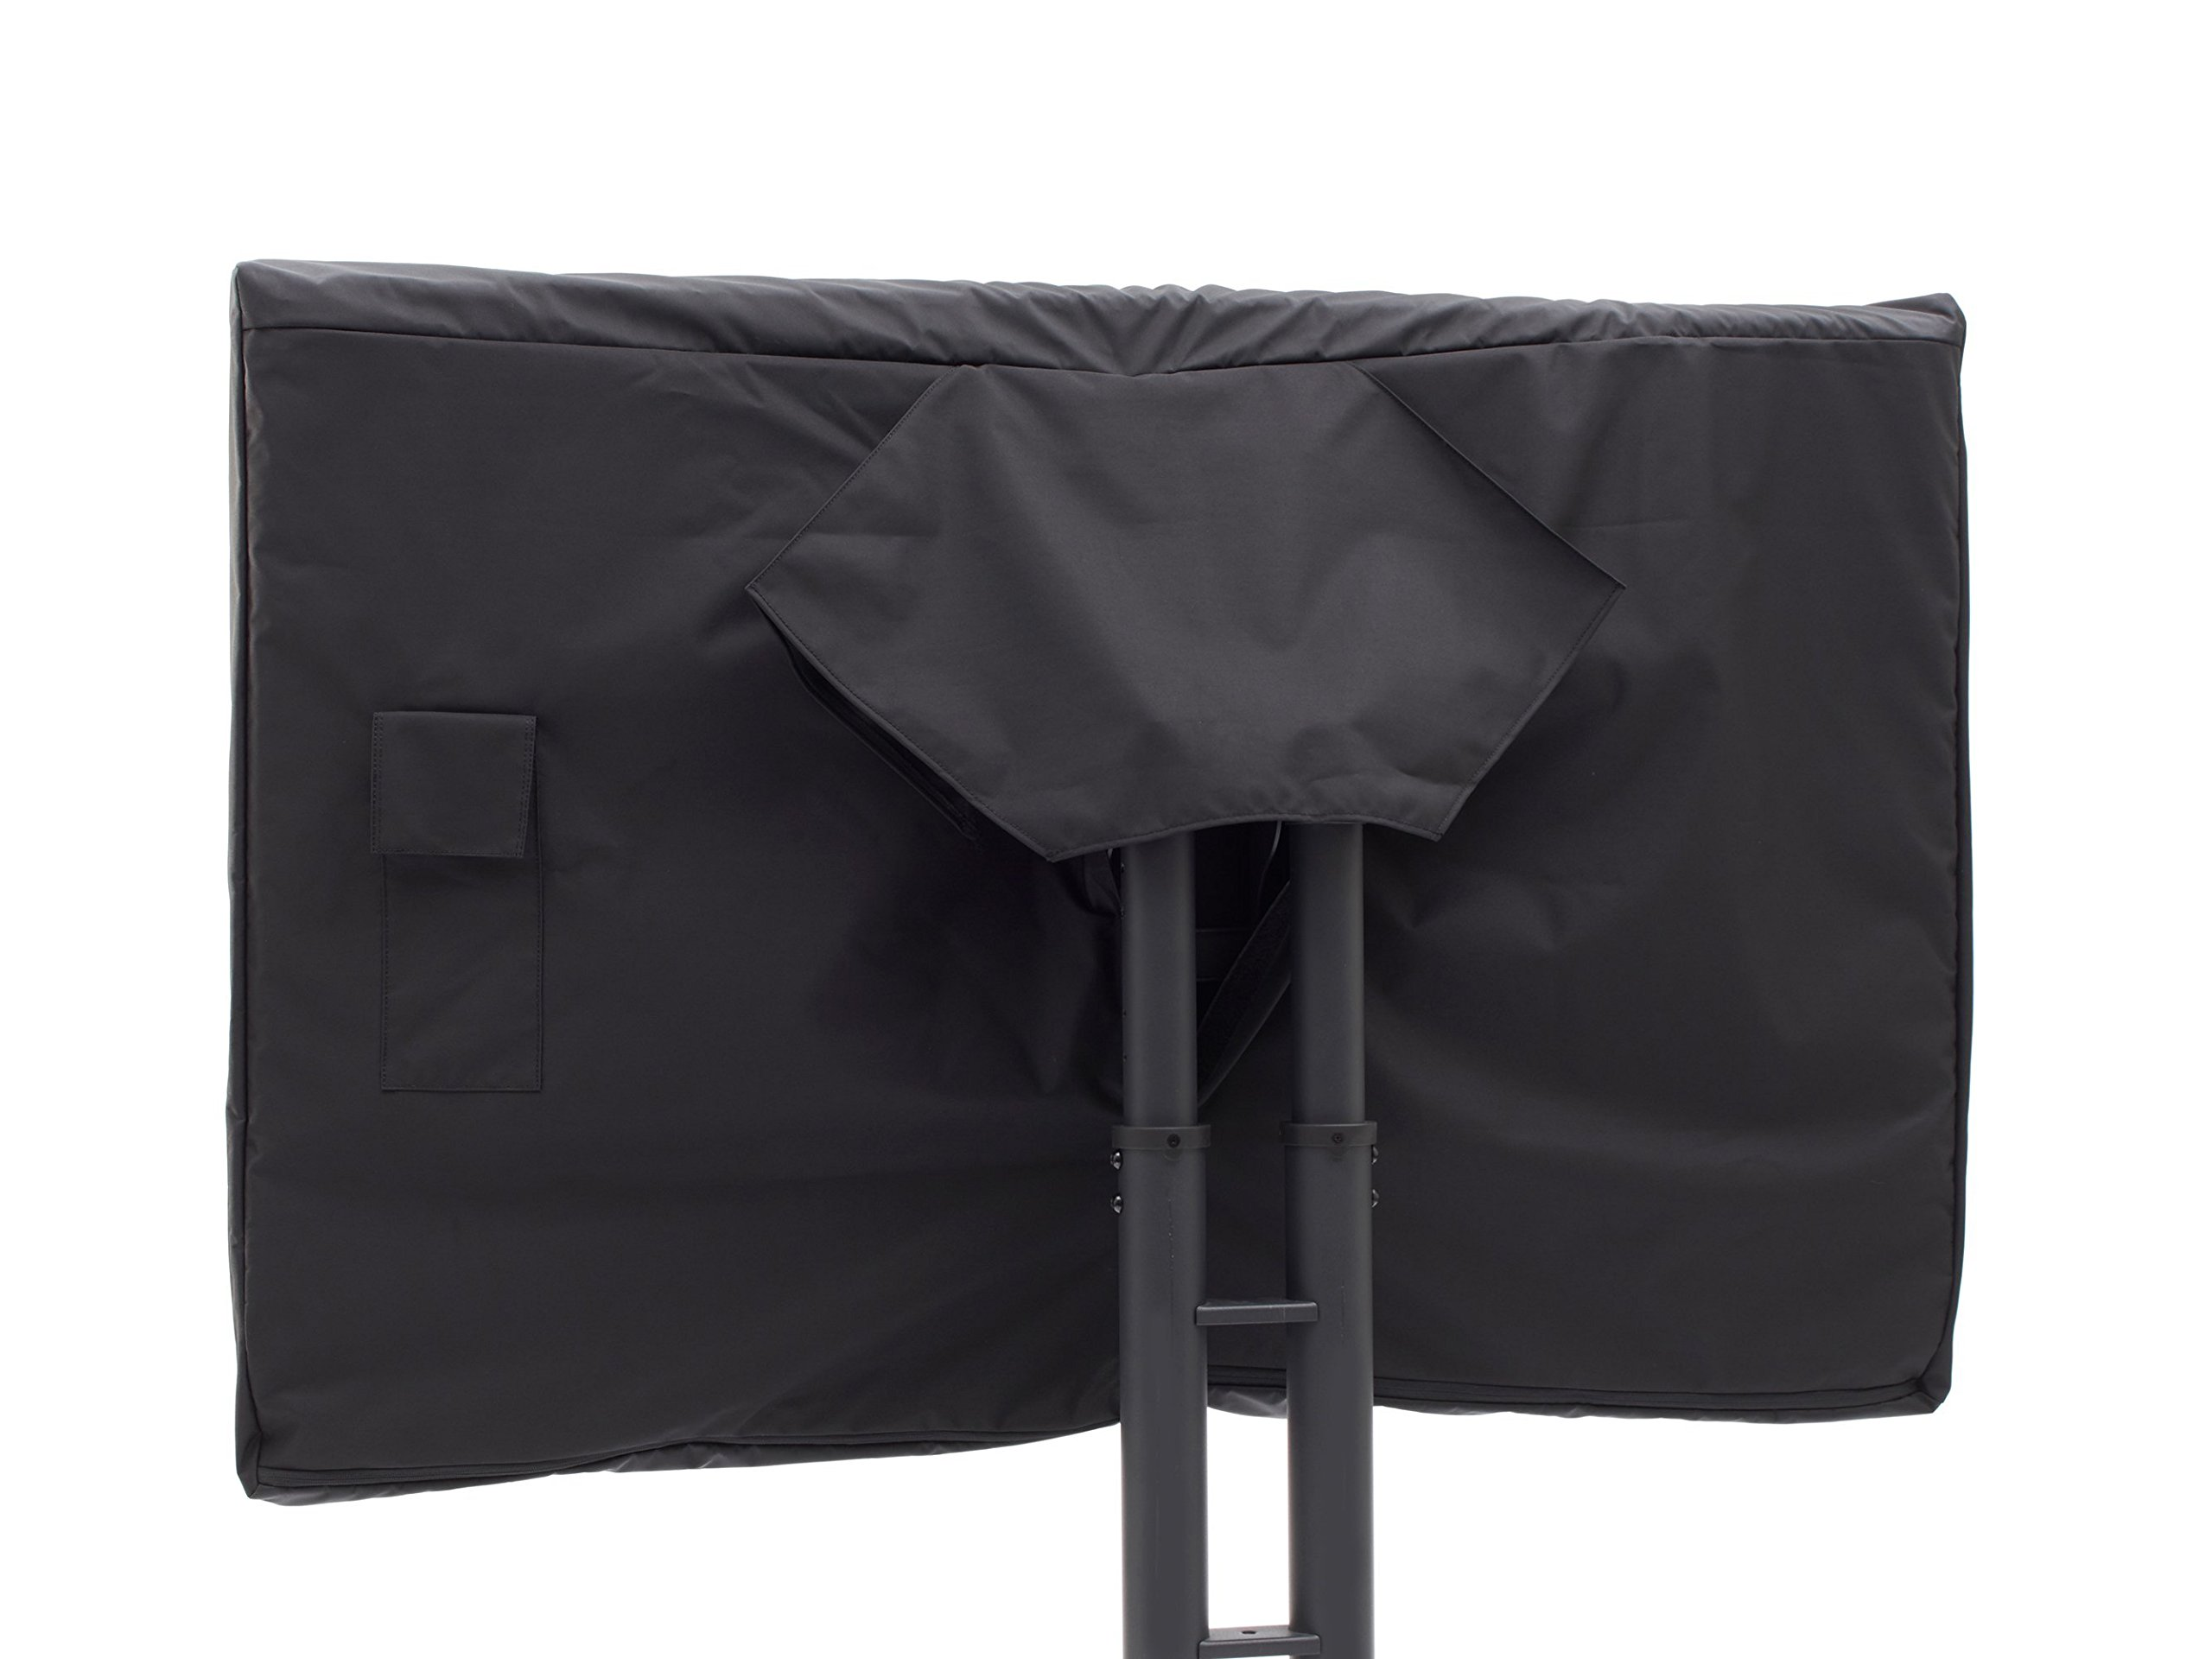 Covermates - Outdoor TV Cover - Fits 42 to 45 Inch TV's - Elite - 300 Denier Stock-Dyed Polyester - Full Coverage - Front Interior Fleece Lining - 3 YR Warranty - Water Resistant - Black